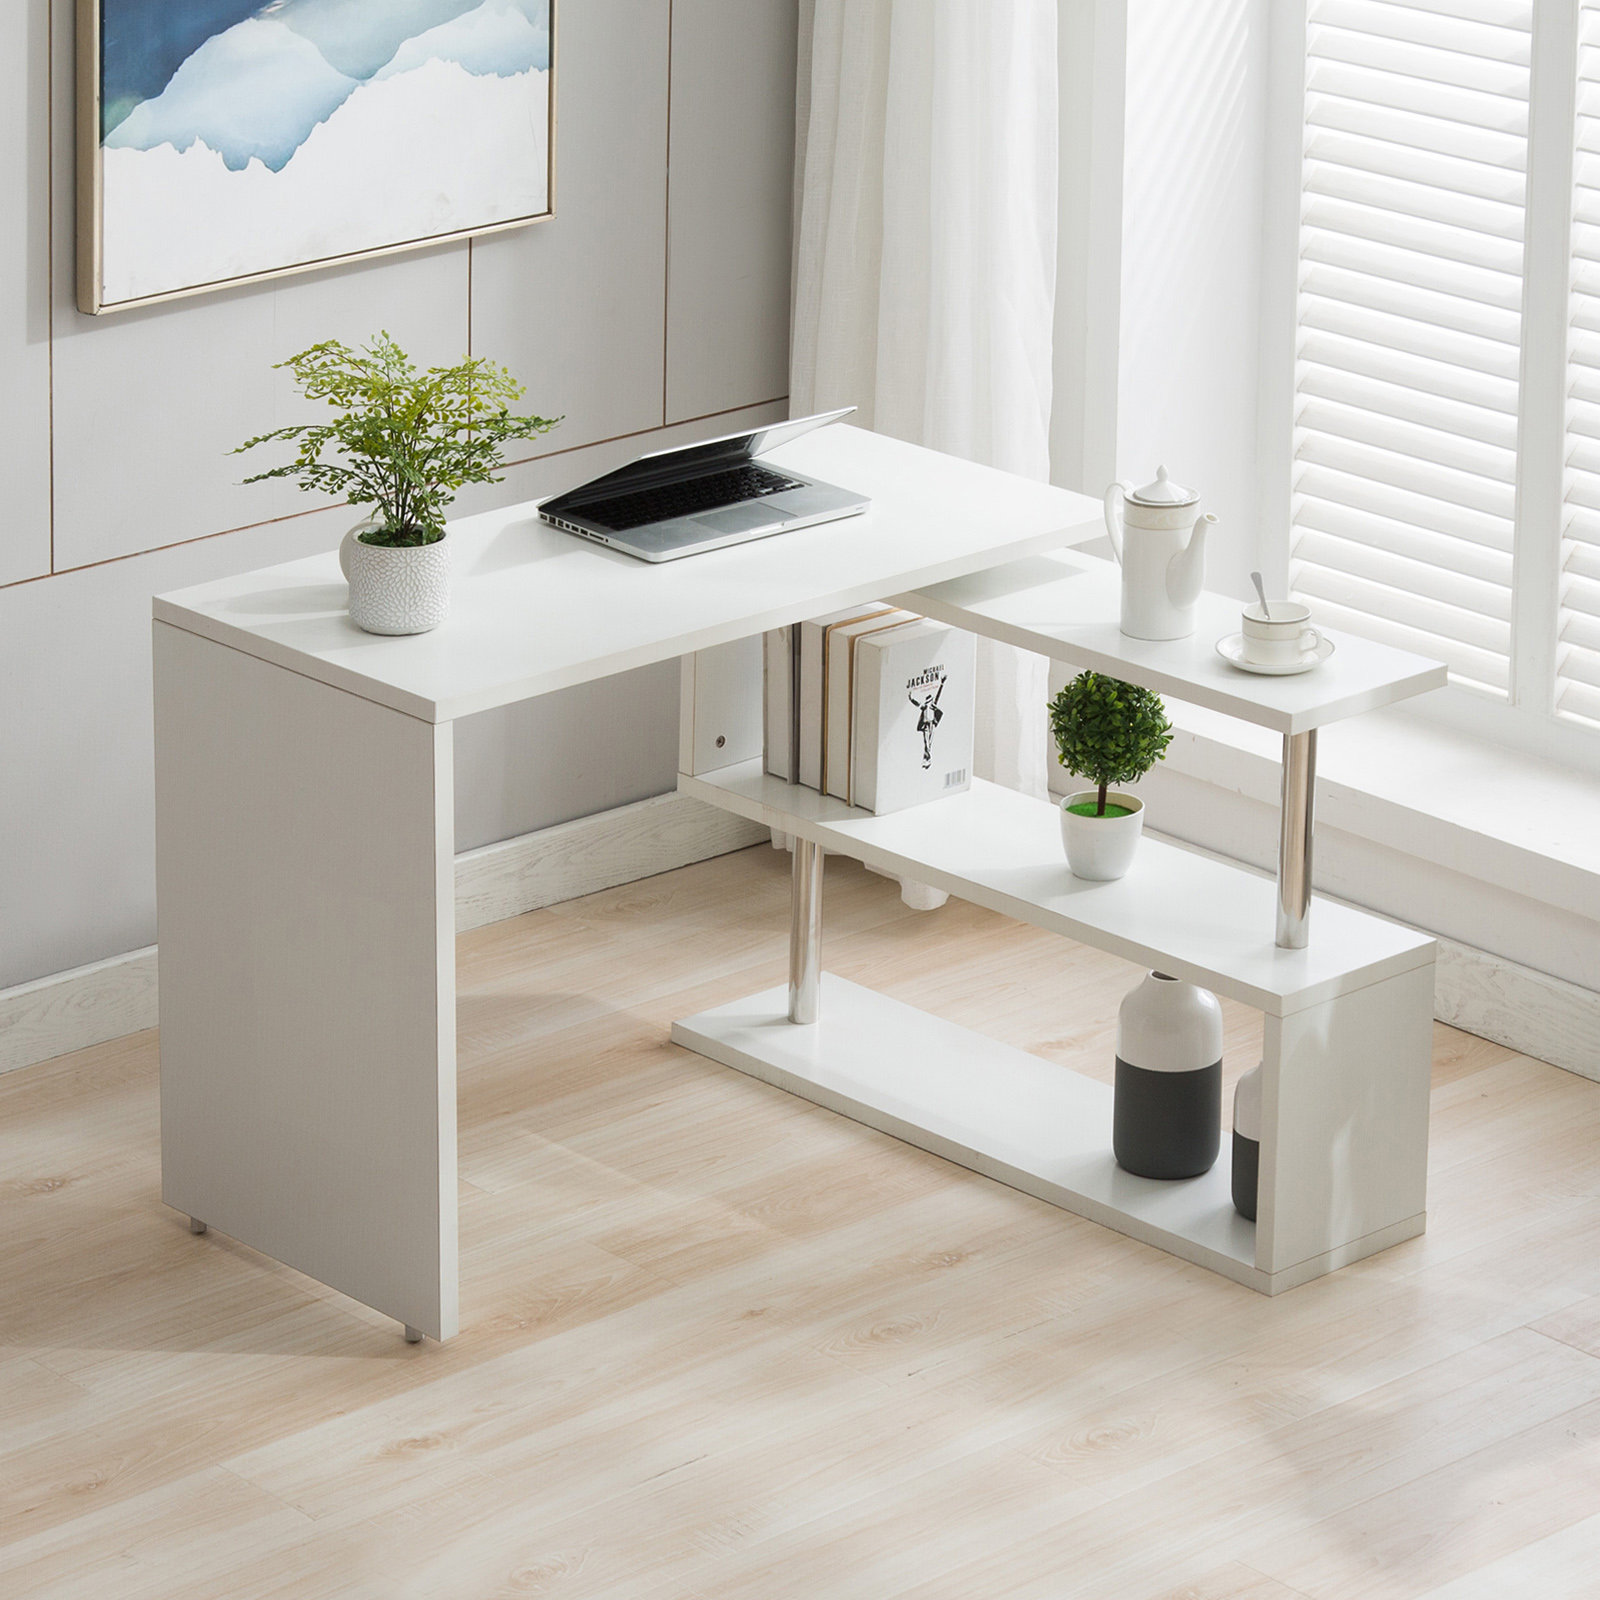 White L-Shaped Rotating Table W/Storage Space Corner ...